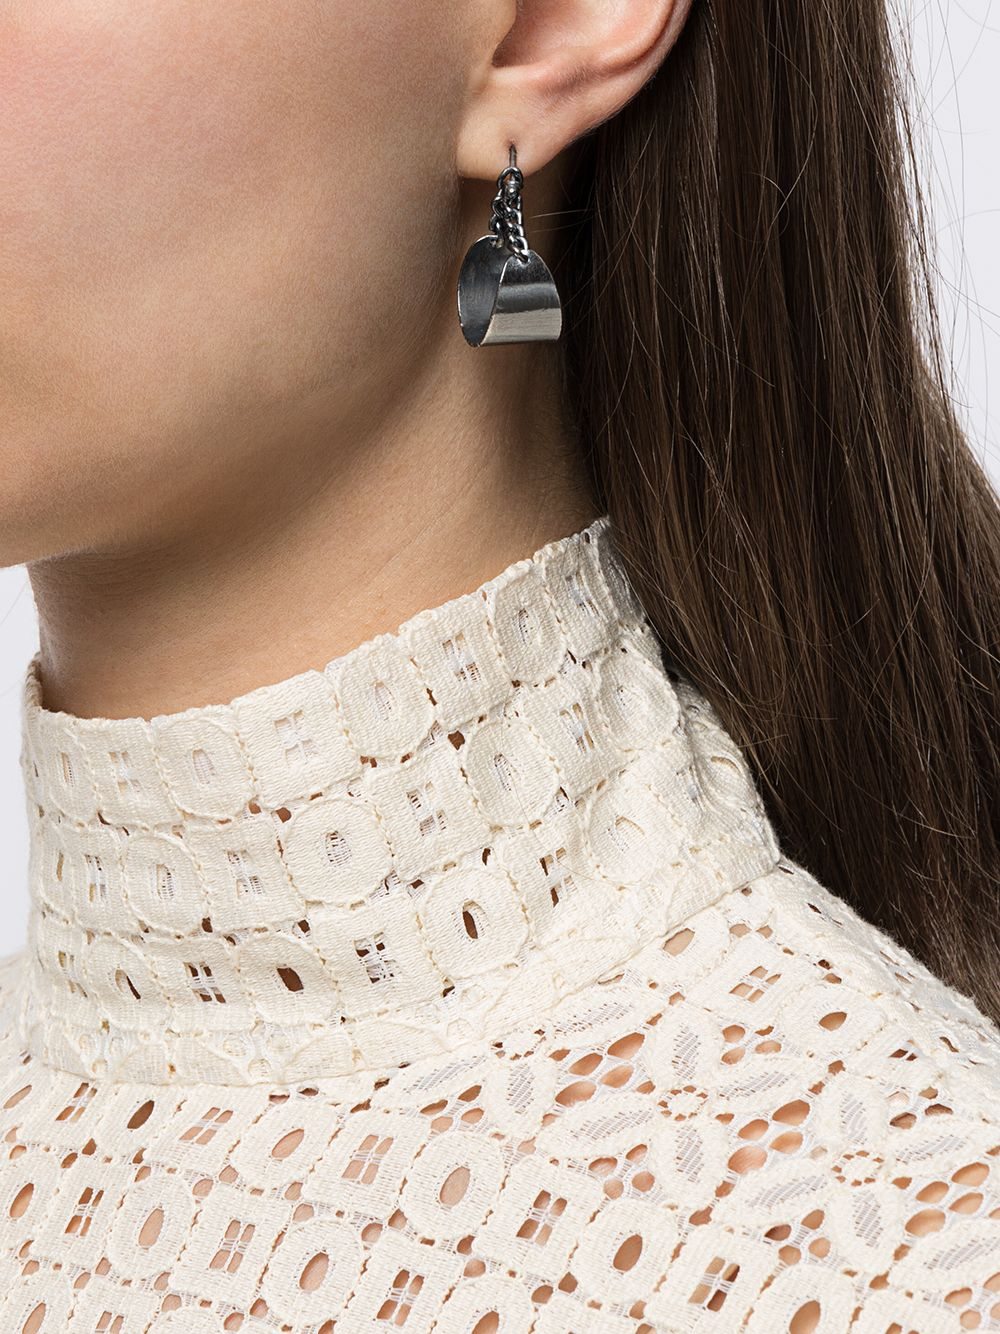 UMA WANG X DETAJ SMALL LUNA CHAIN EARRING